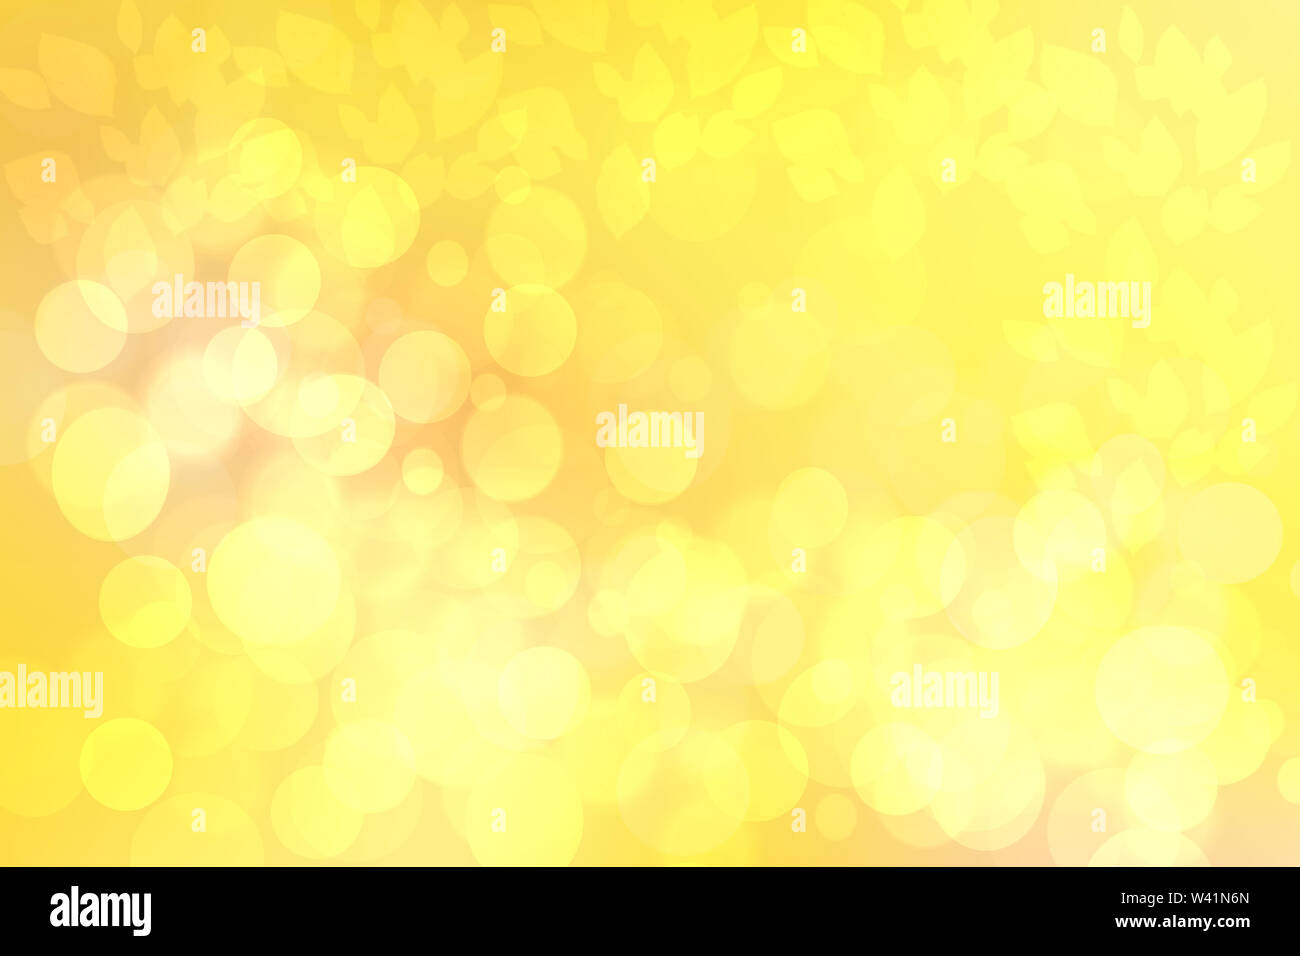 Sunny abstract bright yellow gold bokeh autumn background texture with leaves. Space for your design. Beautiful yellow illustration. - Stock Image